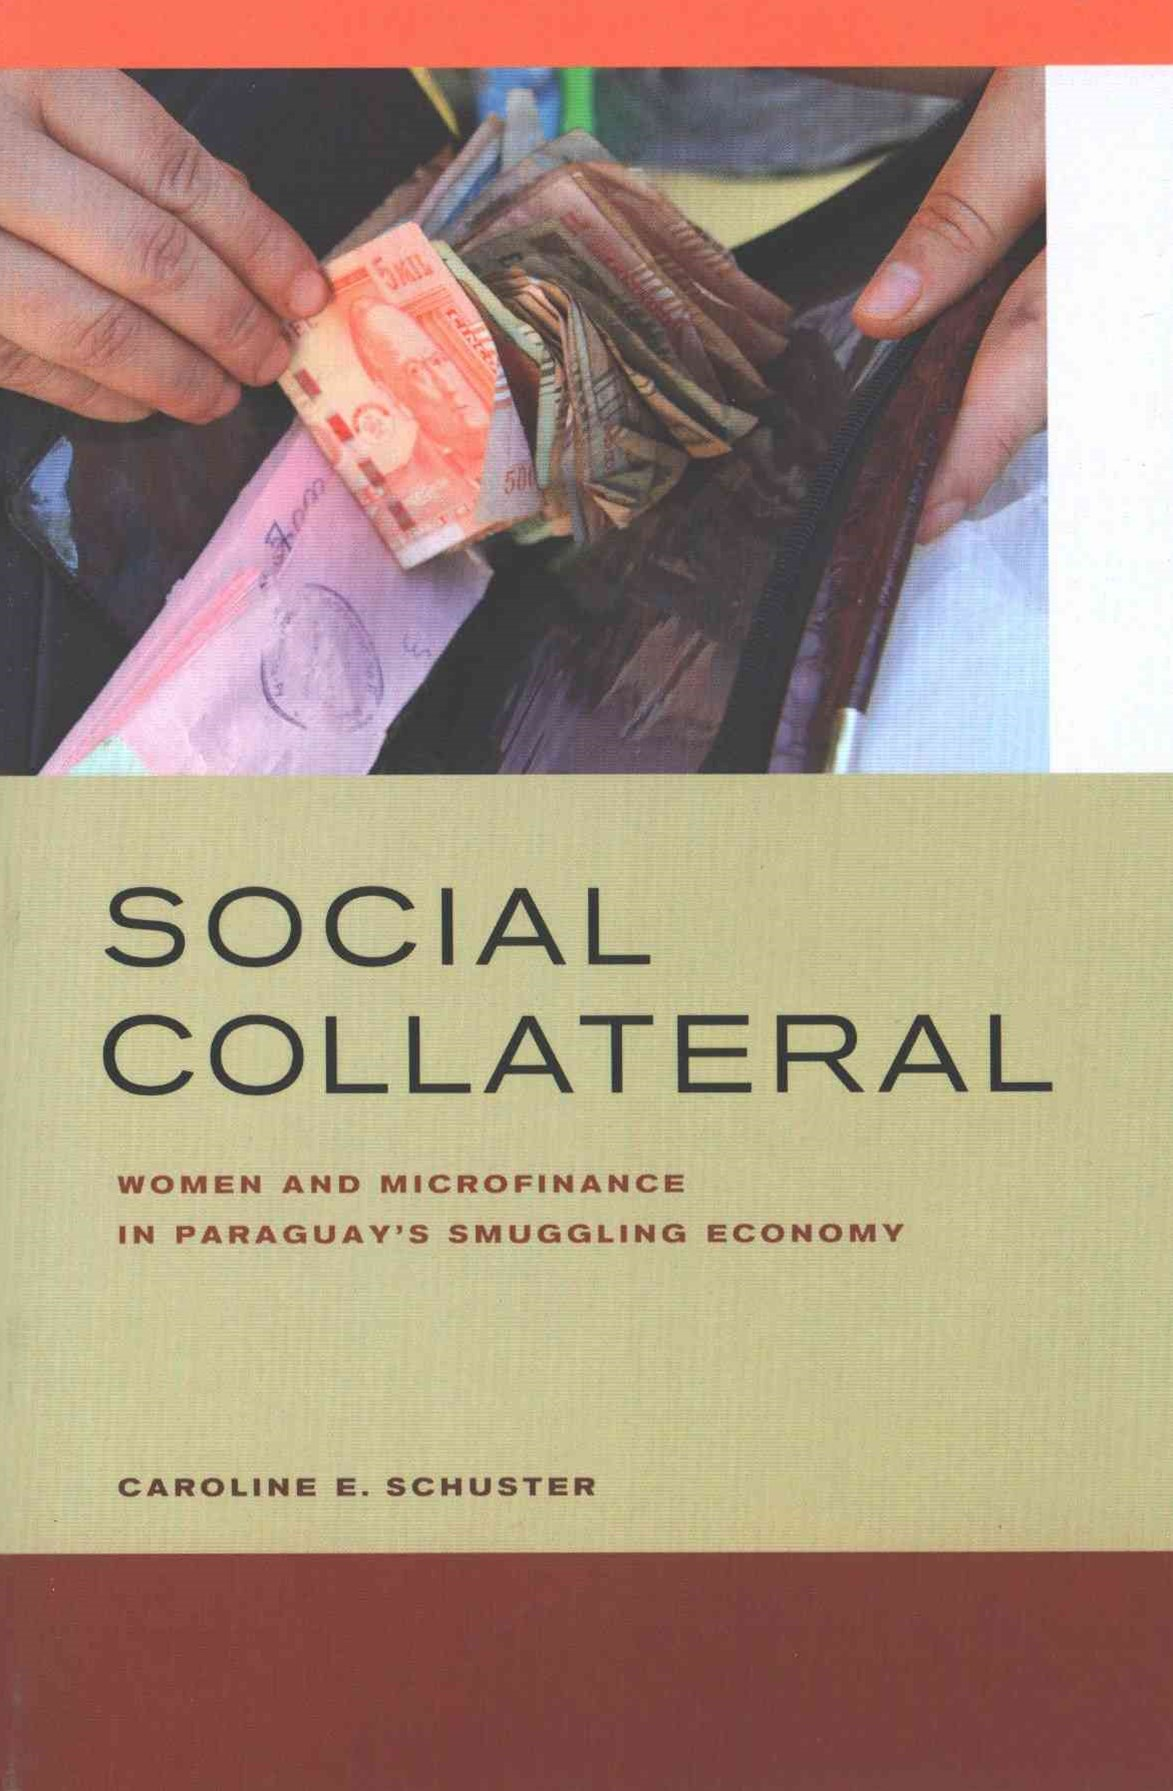 Social Collateral